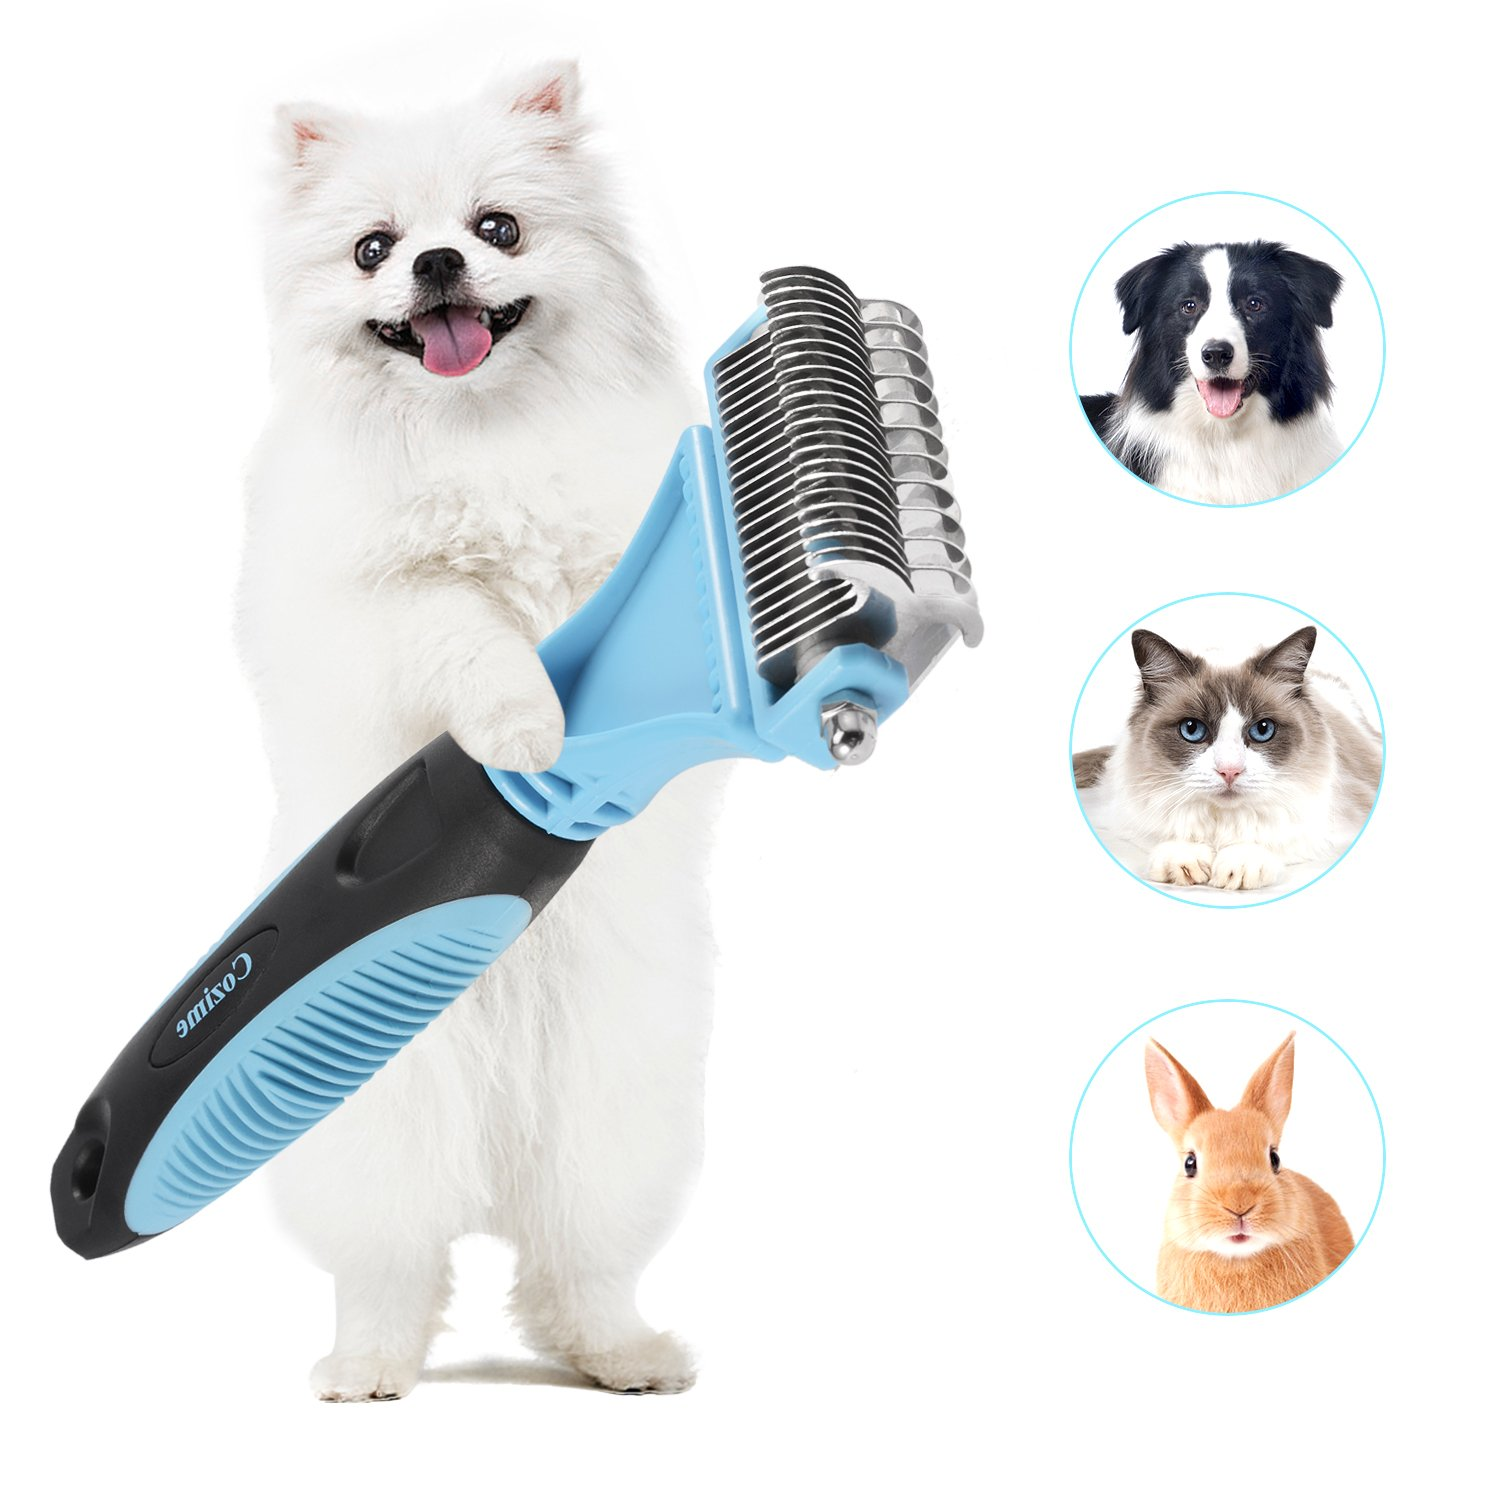 Dematting Comb for Cats, 35 Blade 2 Sided Pet Grooming Comb with Handle for Small Large Dogs with Long Hair, Anti Static Stainless Steel Trimmer for Dogs Cats